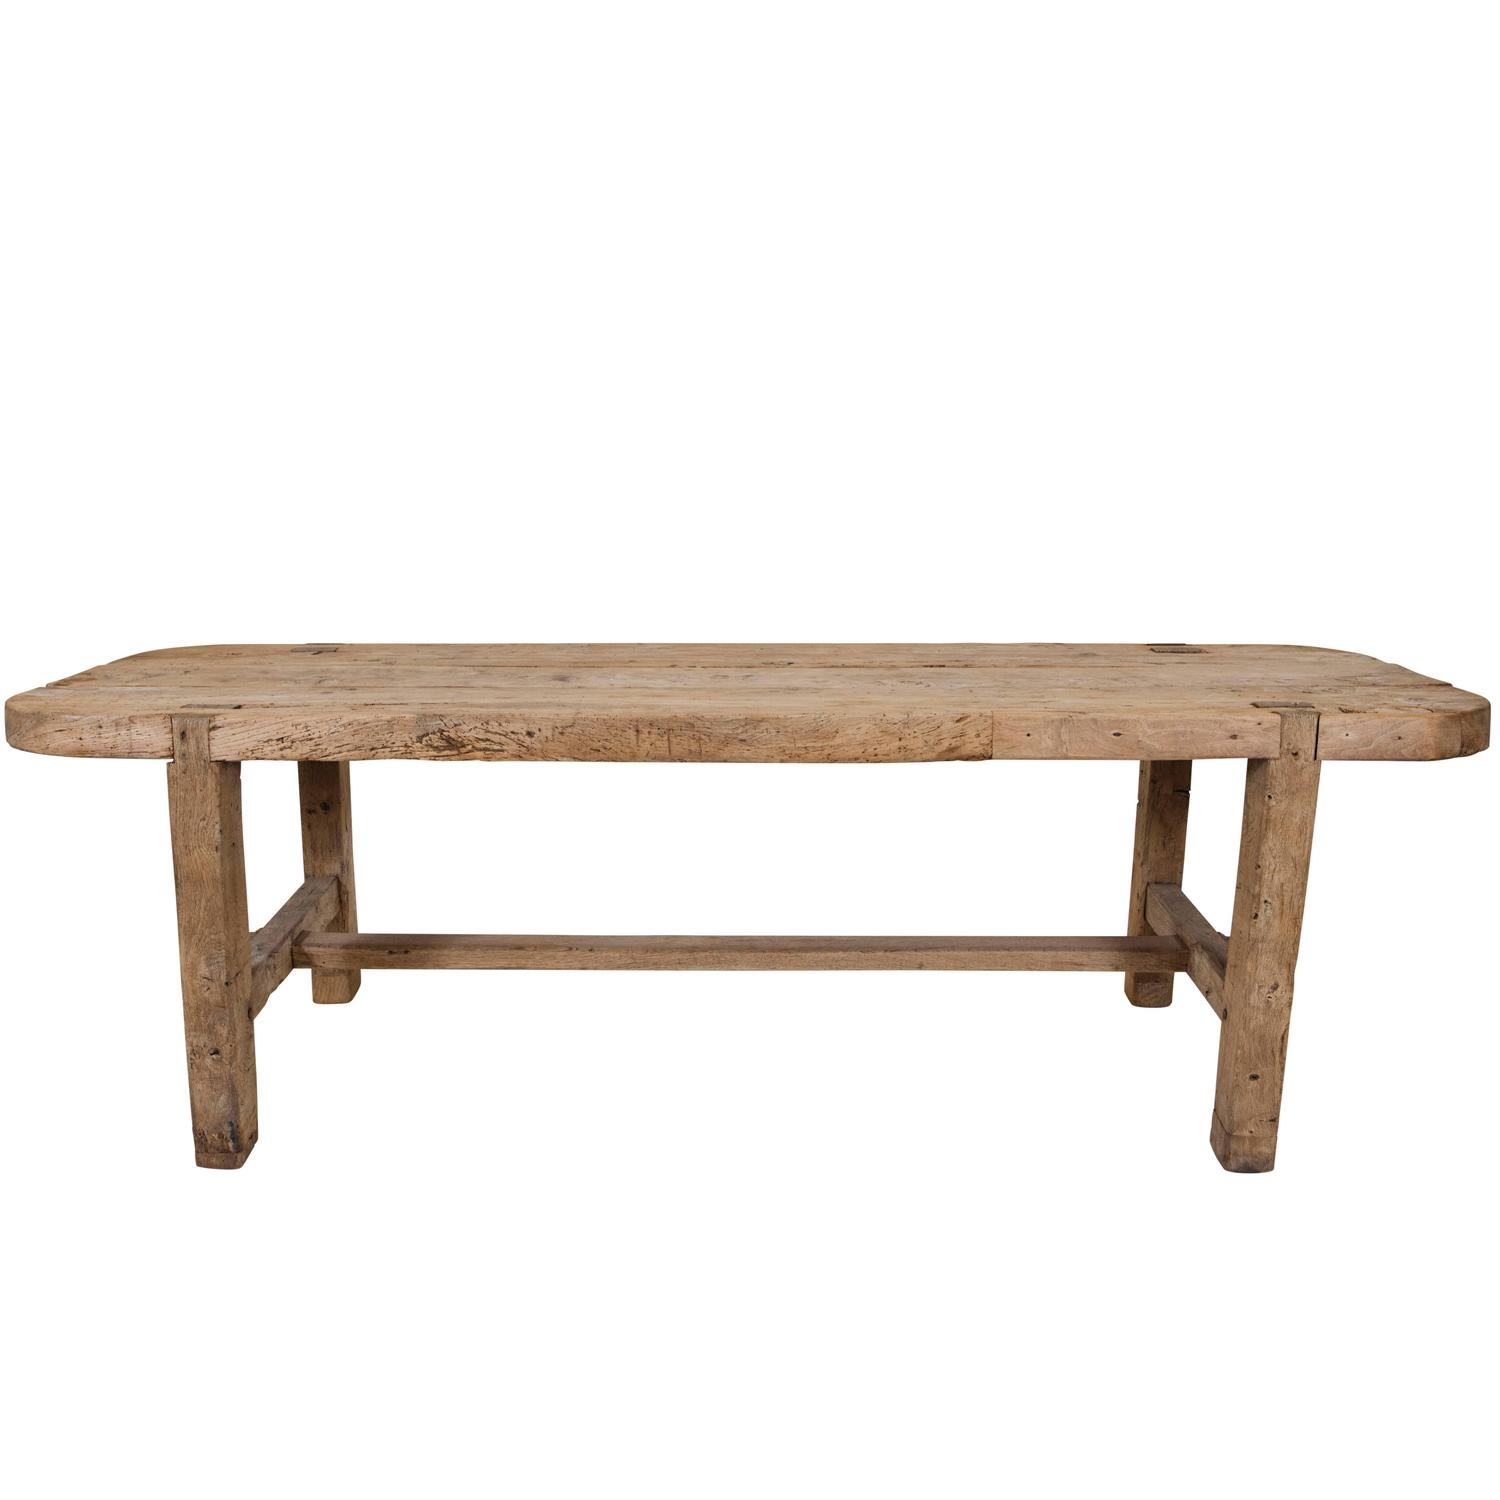 Rustic Kitchen Tables For Sale: French Rustic Kitchen Table For Sale At 1stdibs